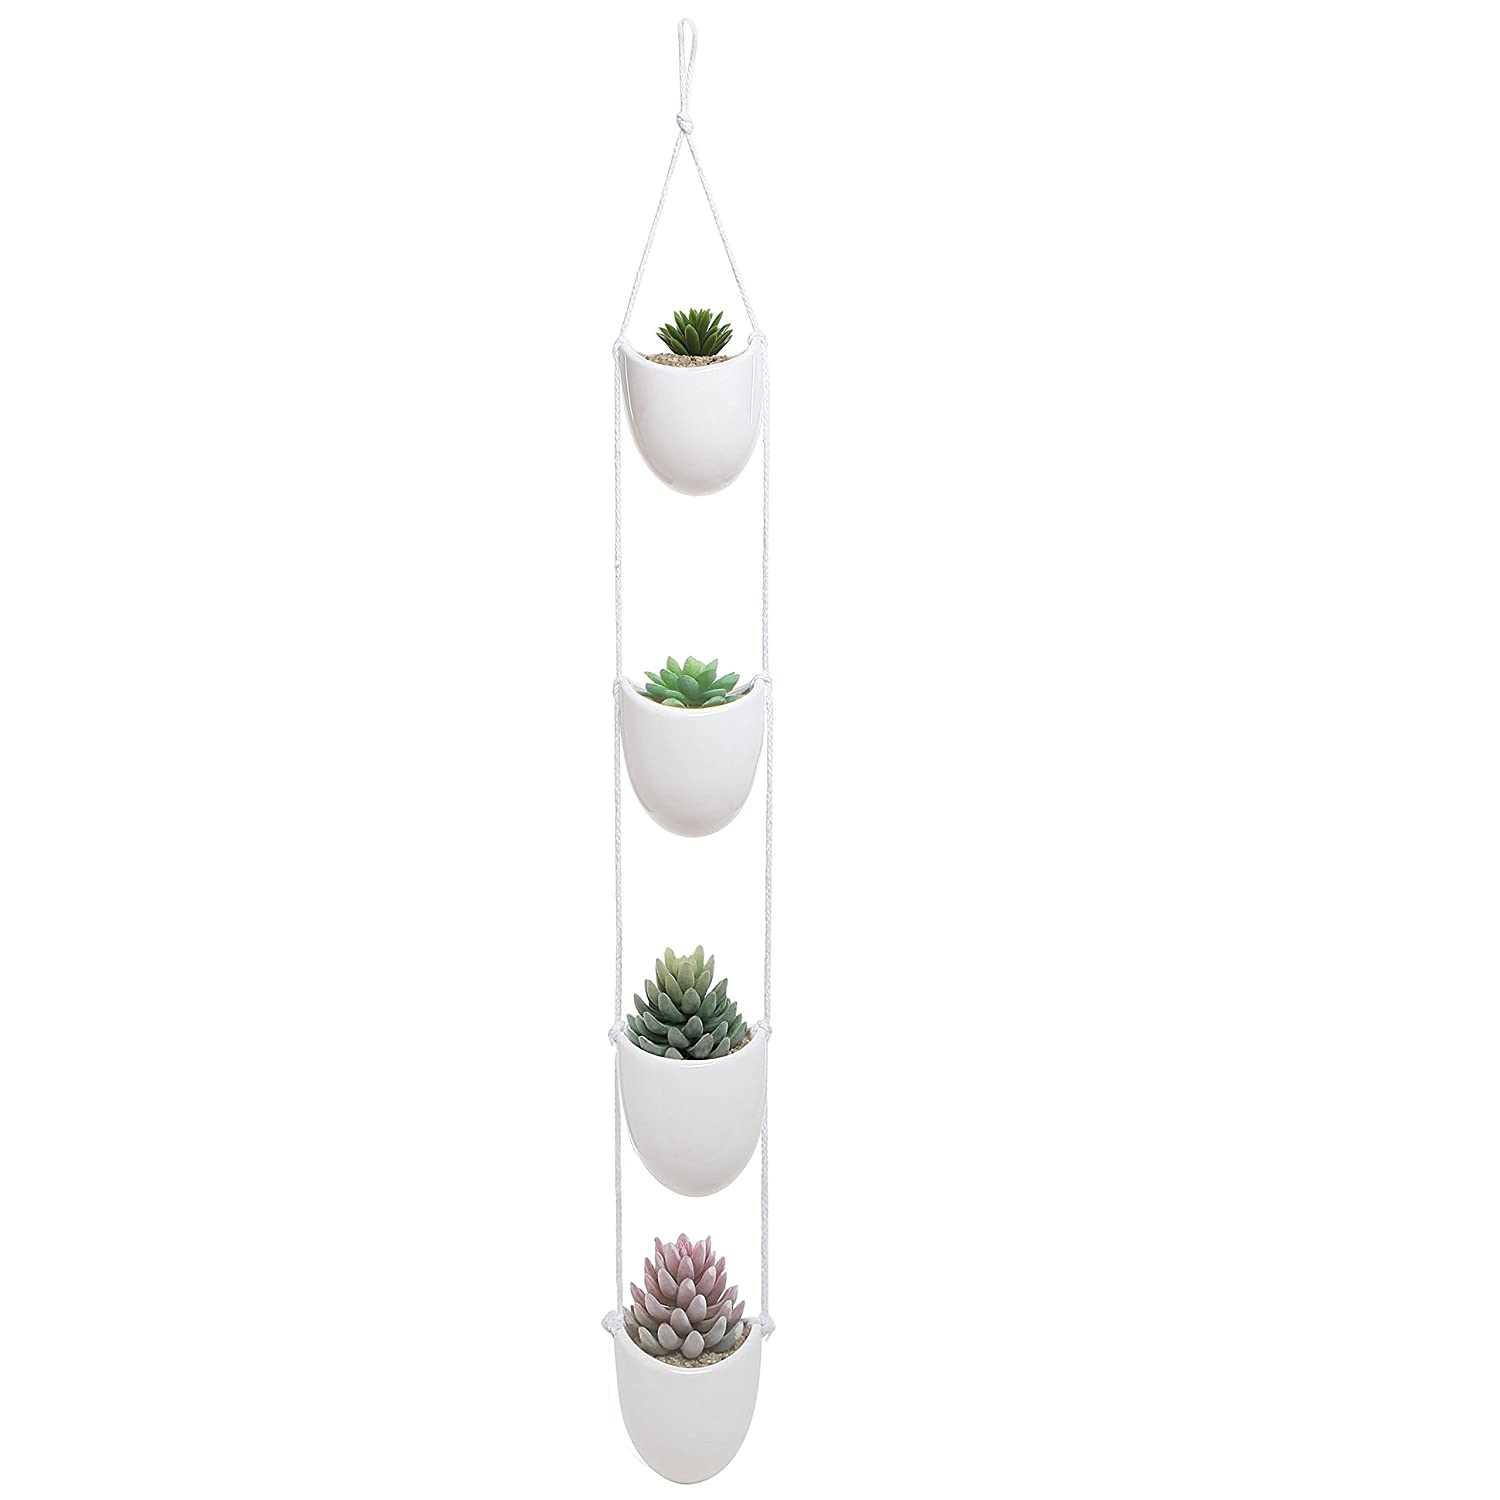 White Ceramic Rope Hanging Planter Set with 4 Flower Pots Plant Containers/Decorative Display Bowls